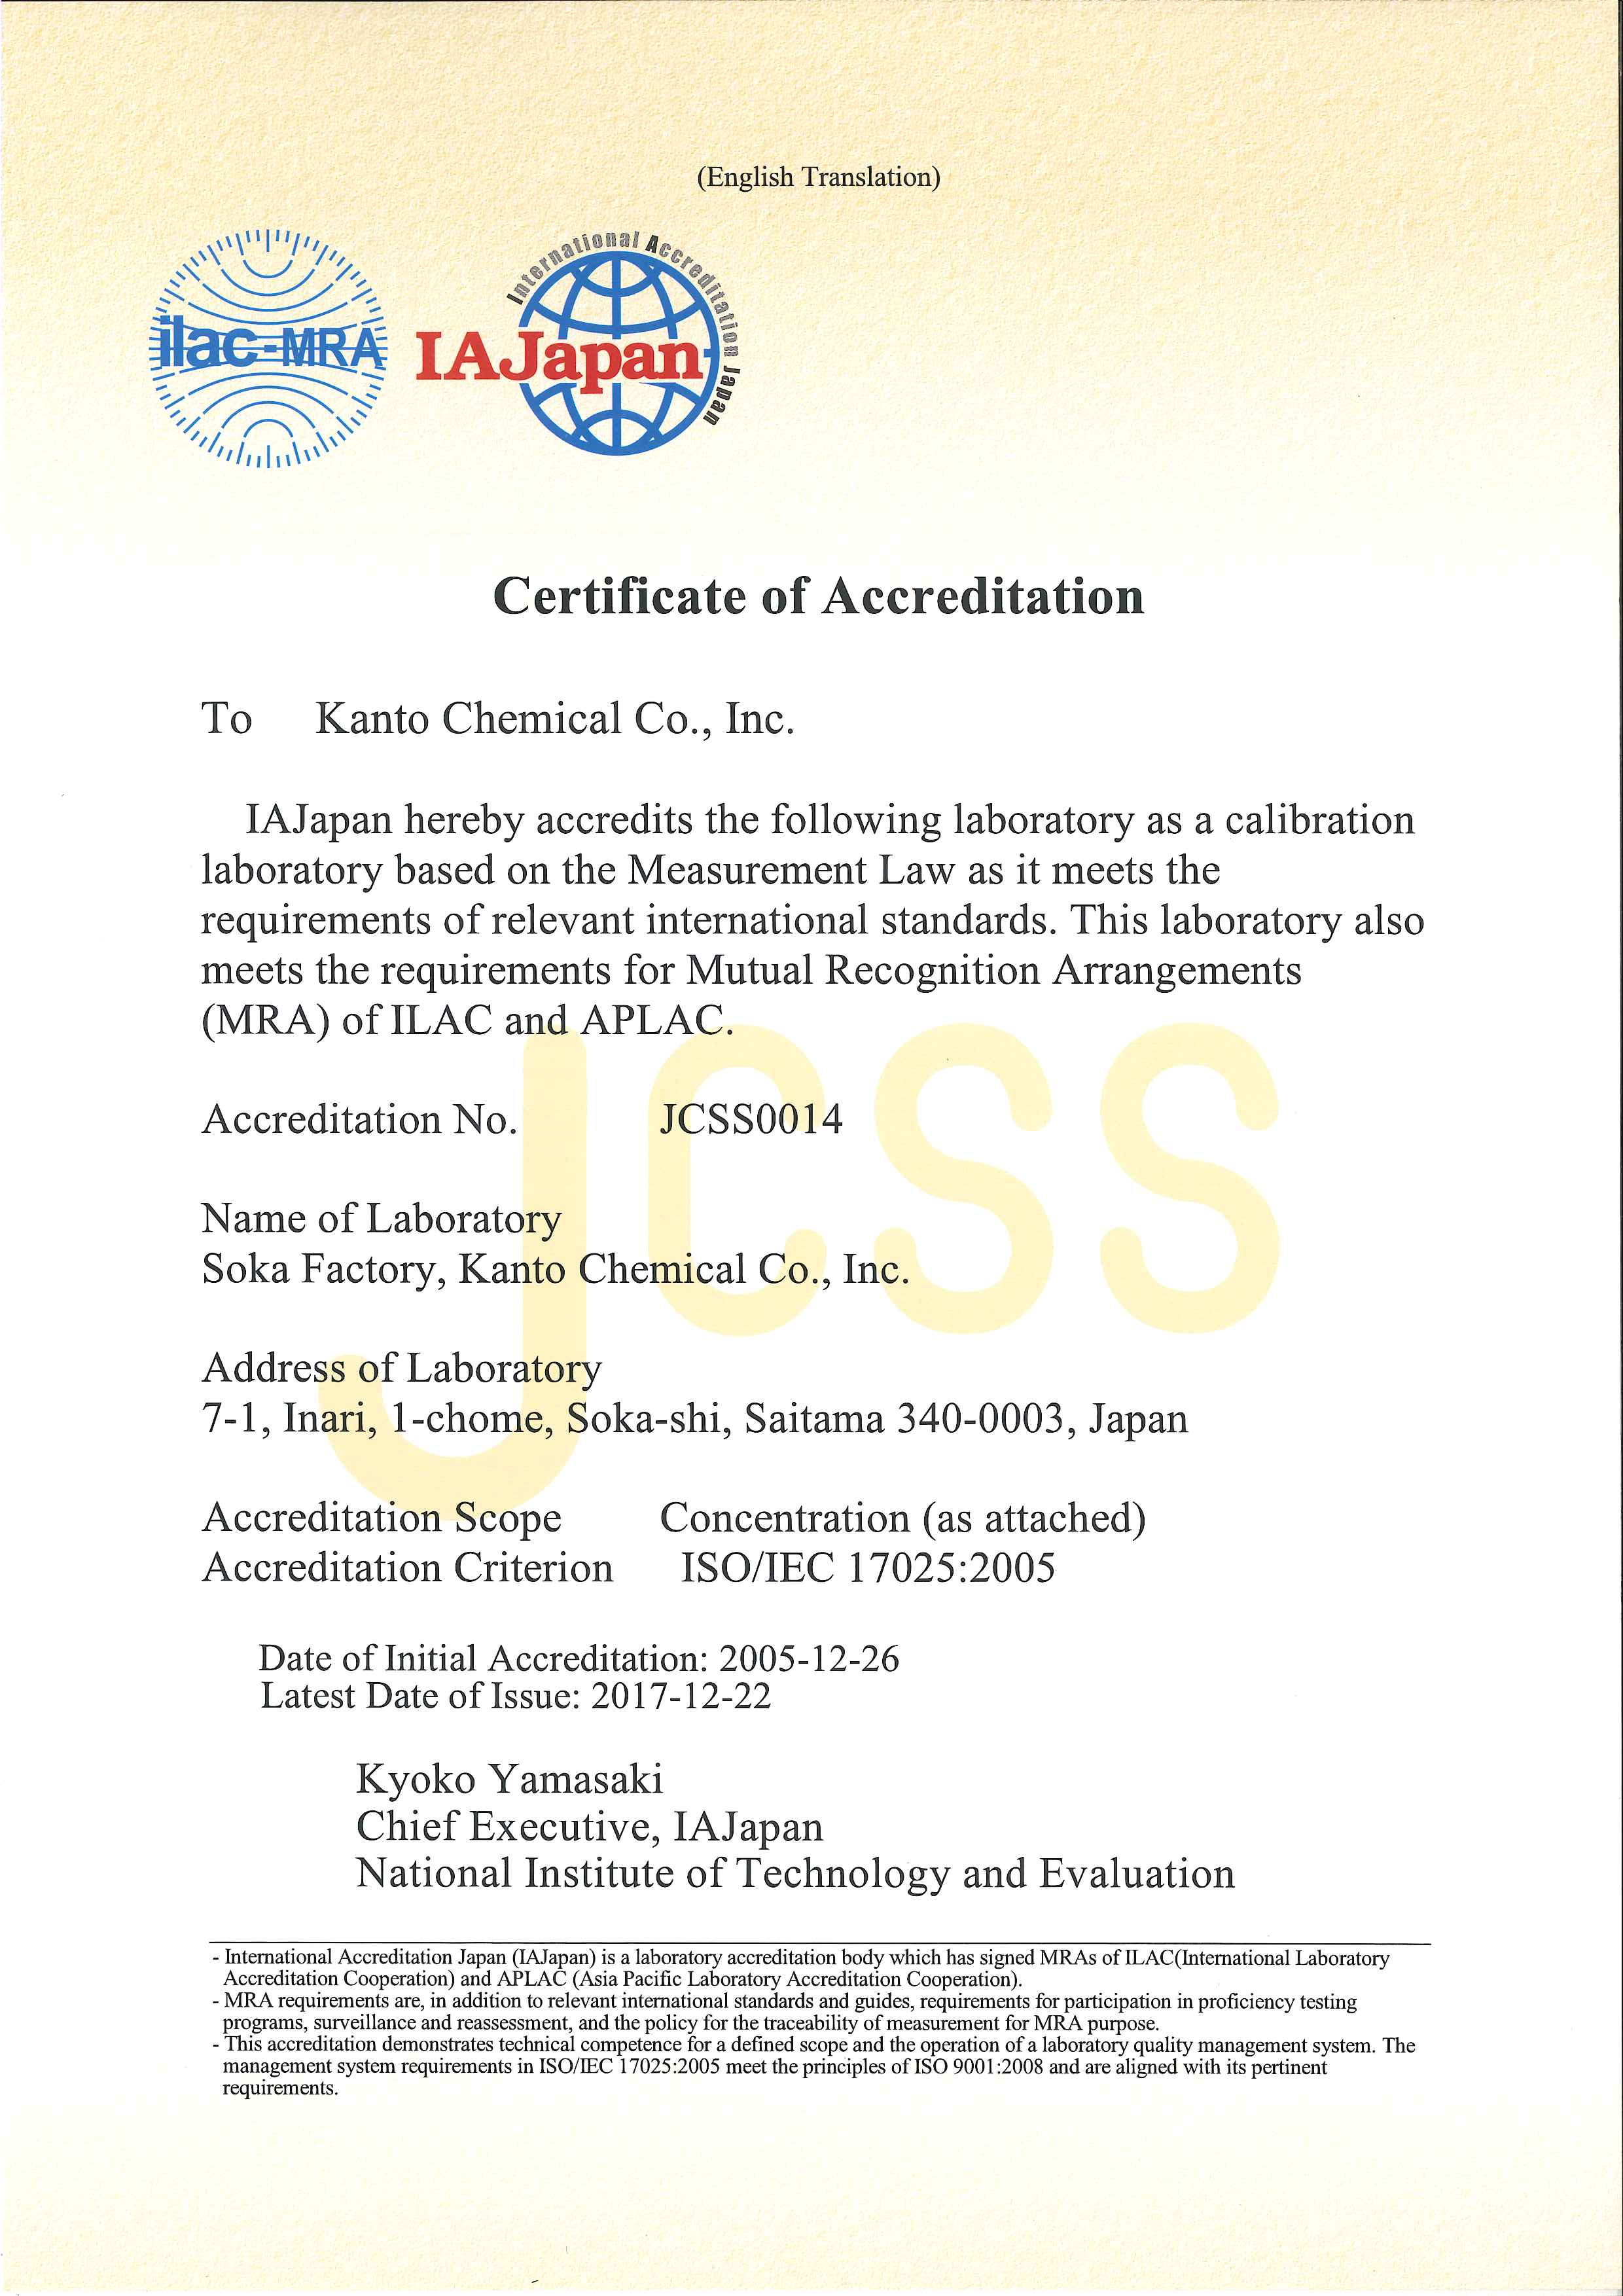 Accredited according to JCSS (The traceability system to National Measurement Standards)